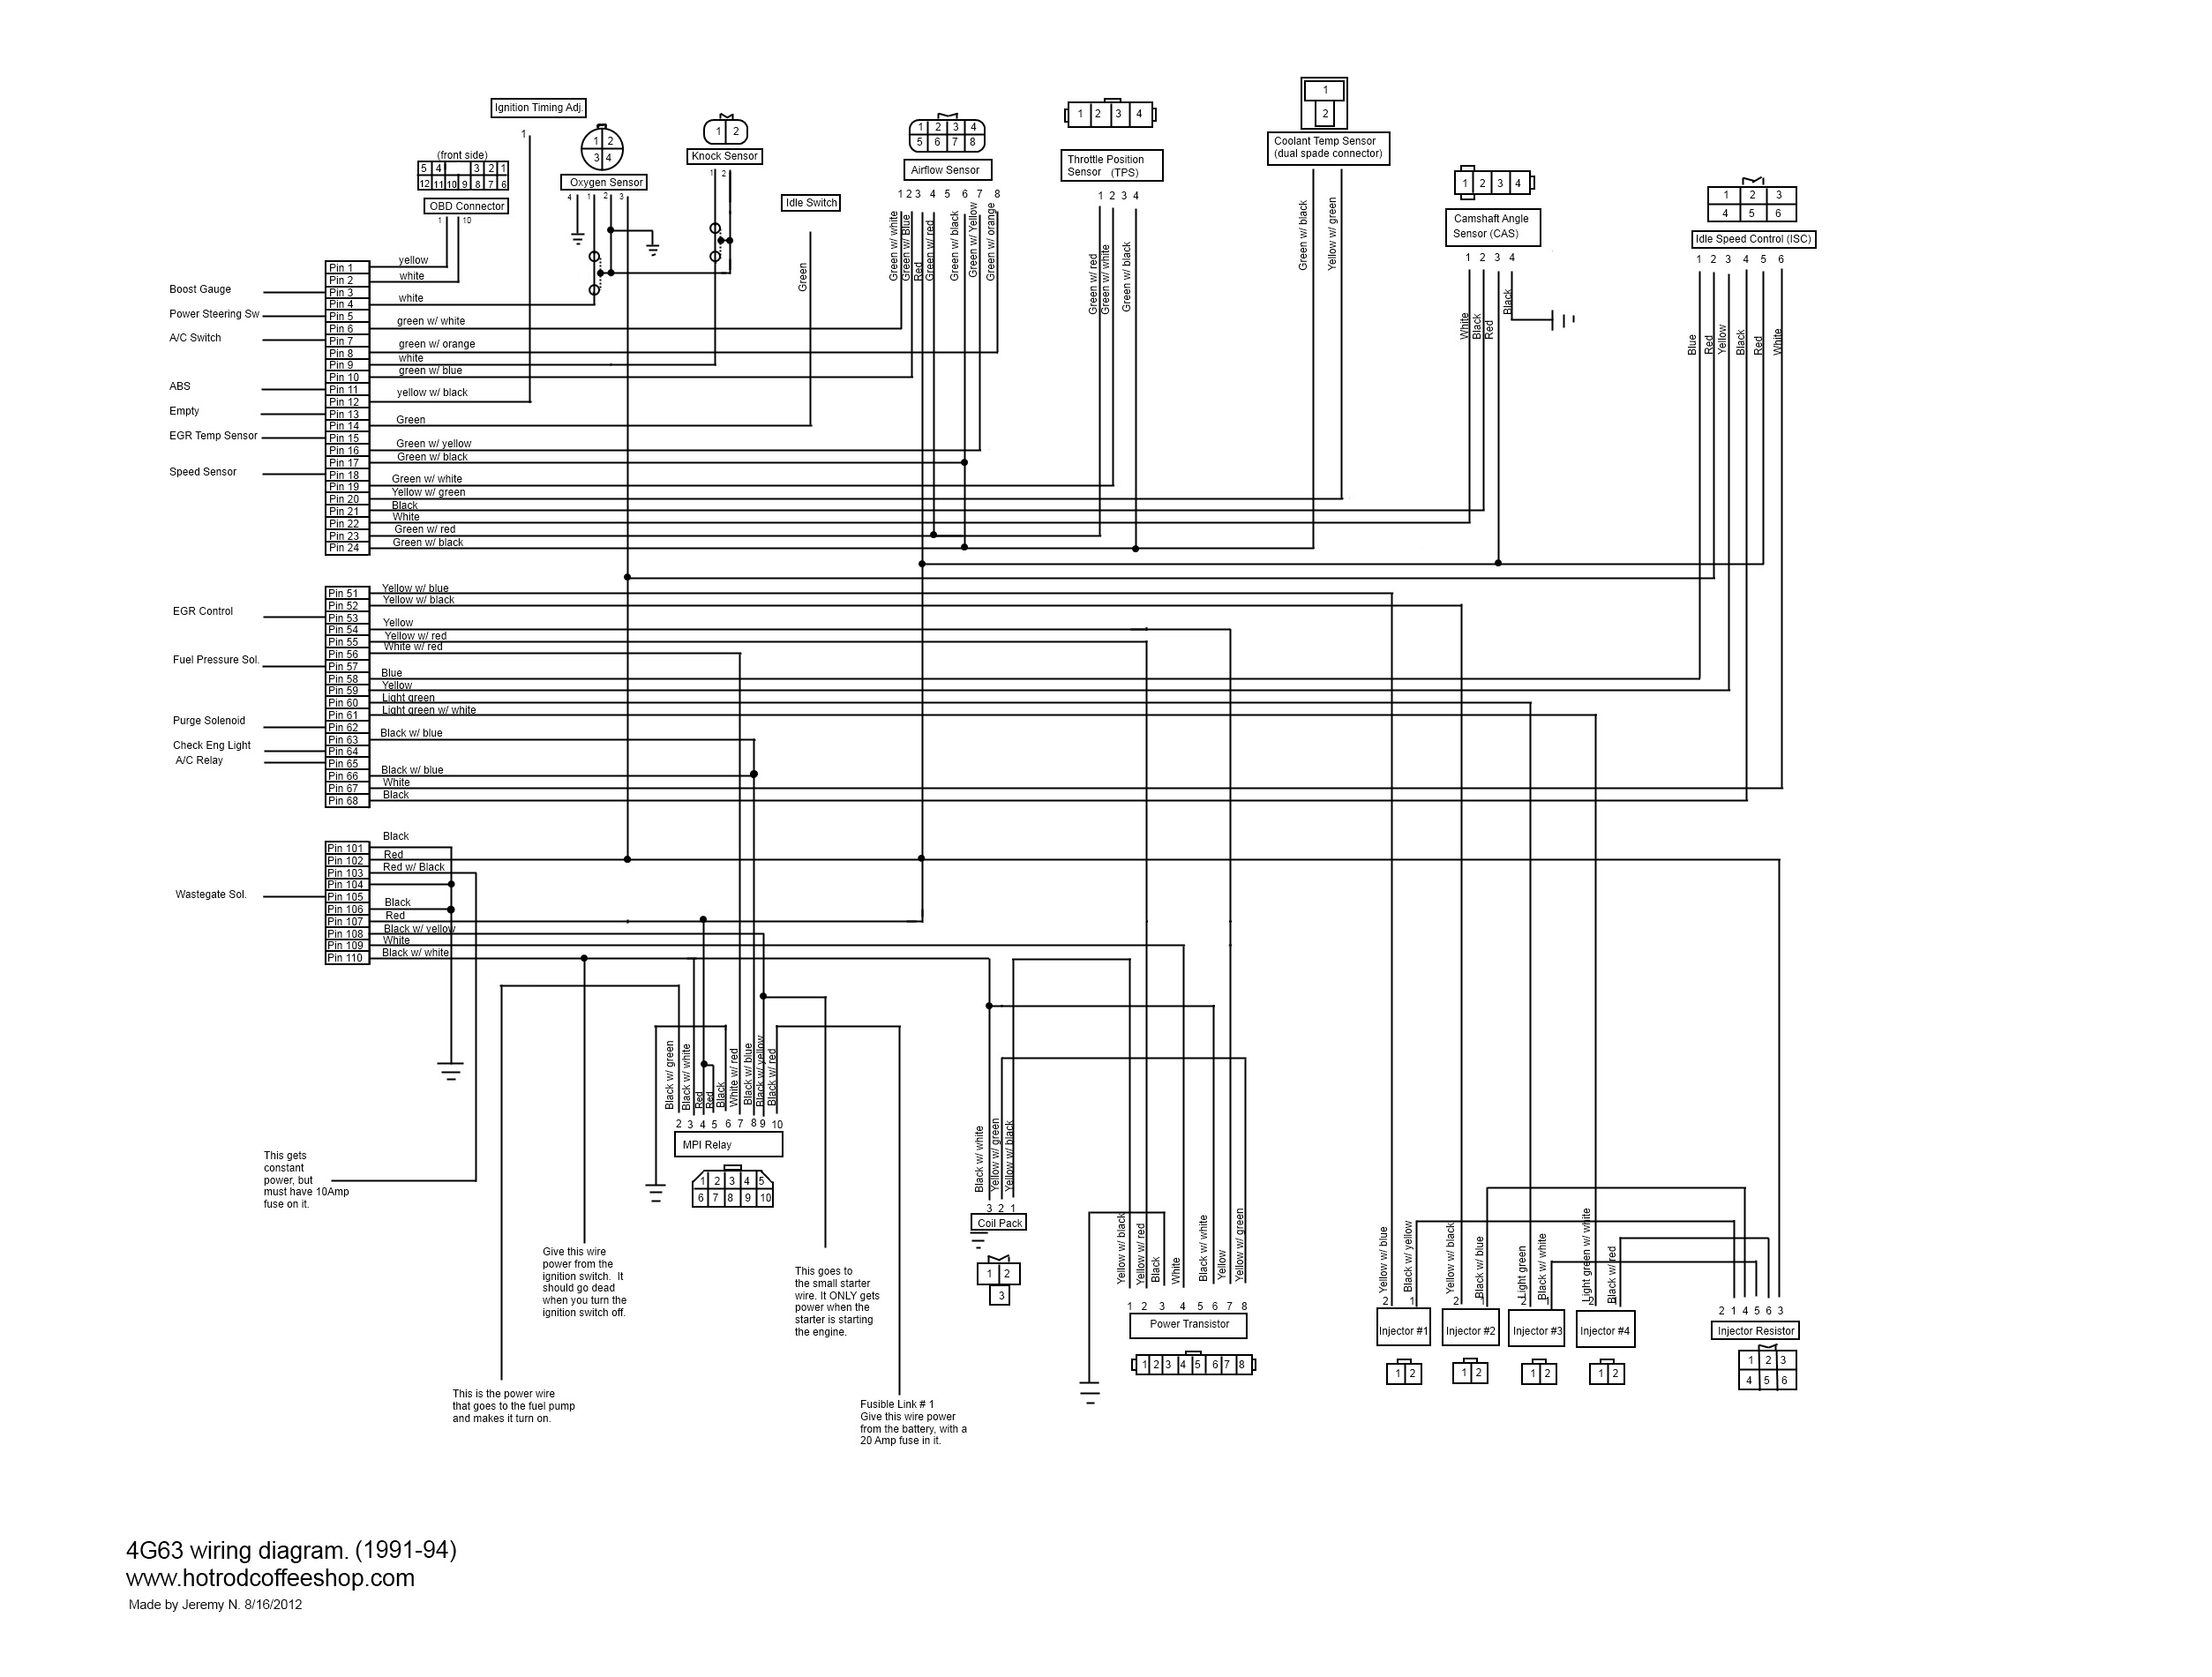 1998 Mitsubishi Eclipse Ignition System Diagram